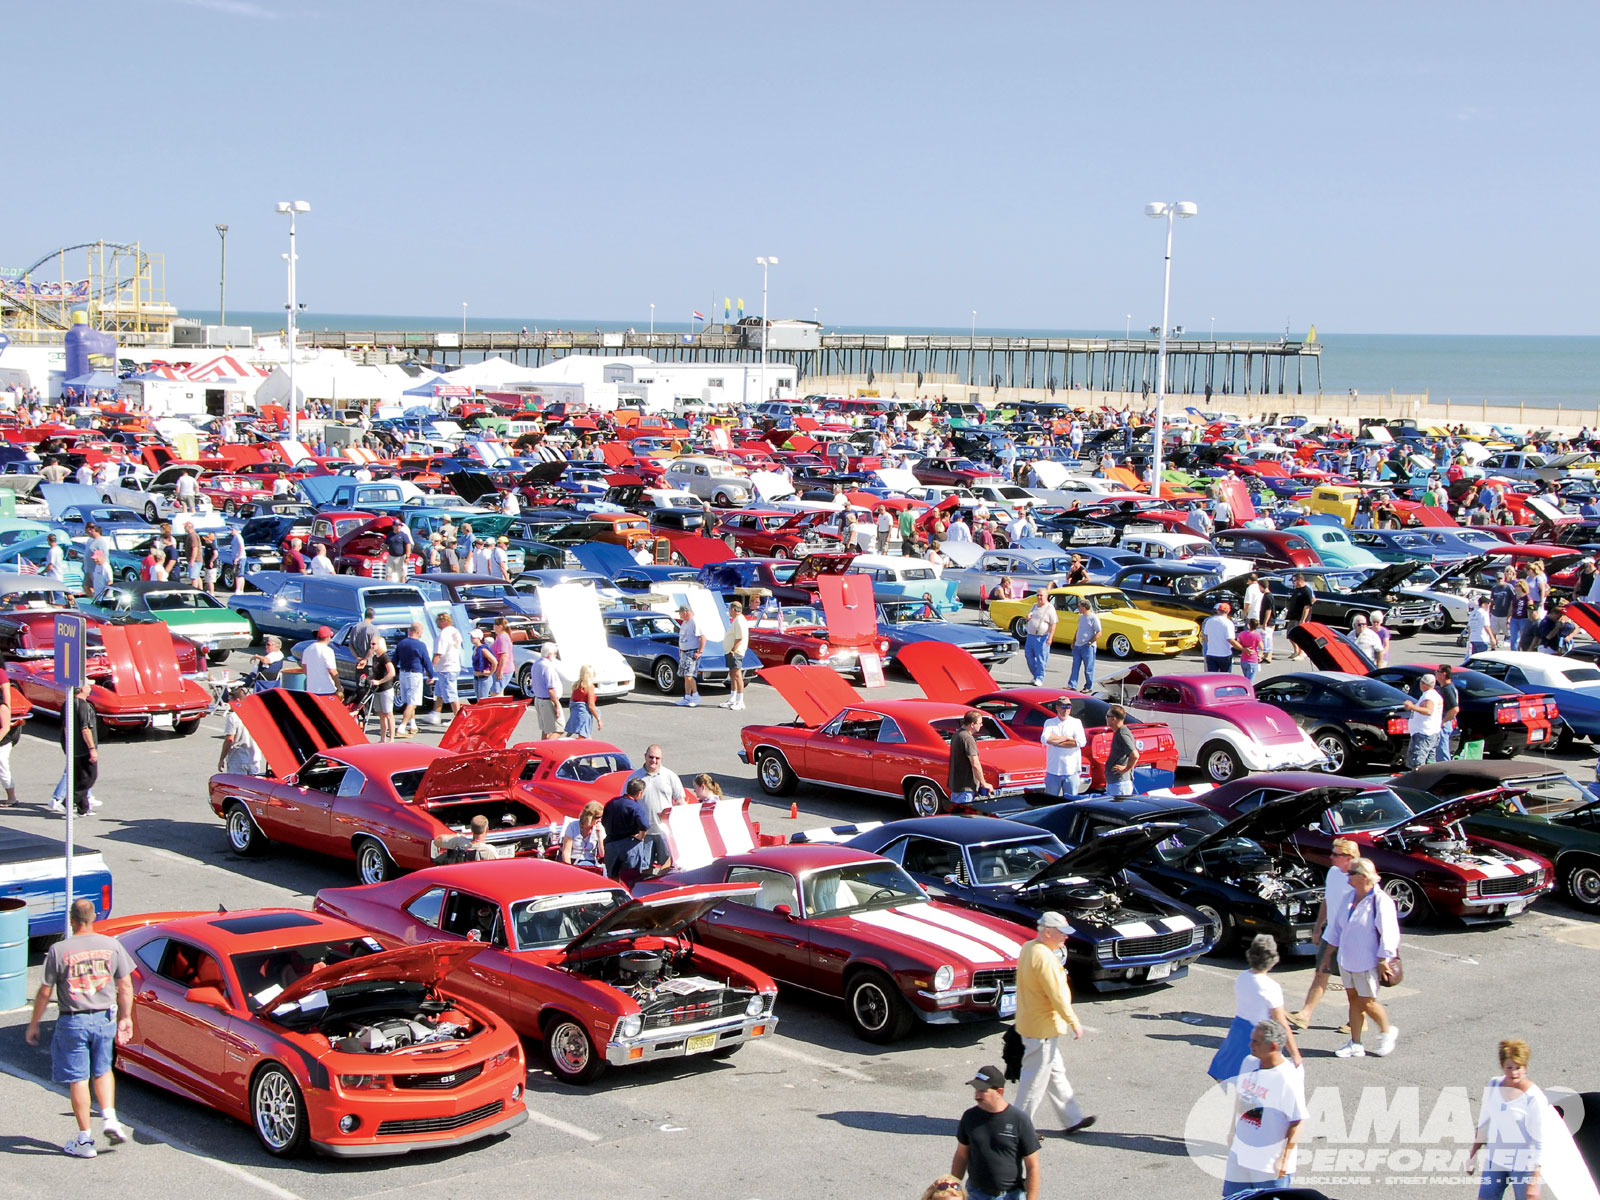 Camp_1104_01_o 13th_annual_endless_summer_cruisin_ocean_city_maryland